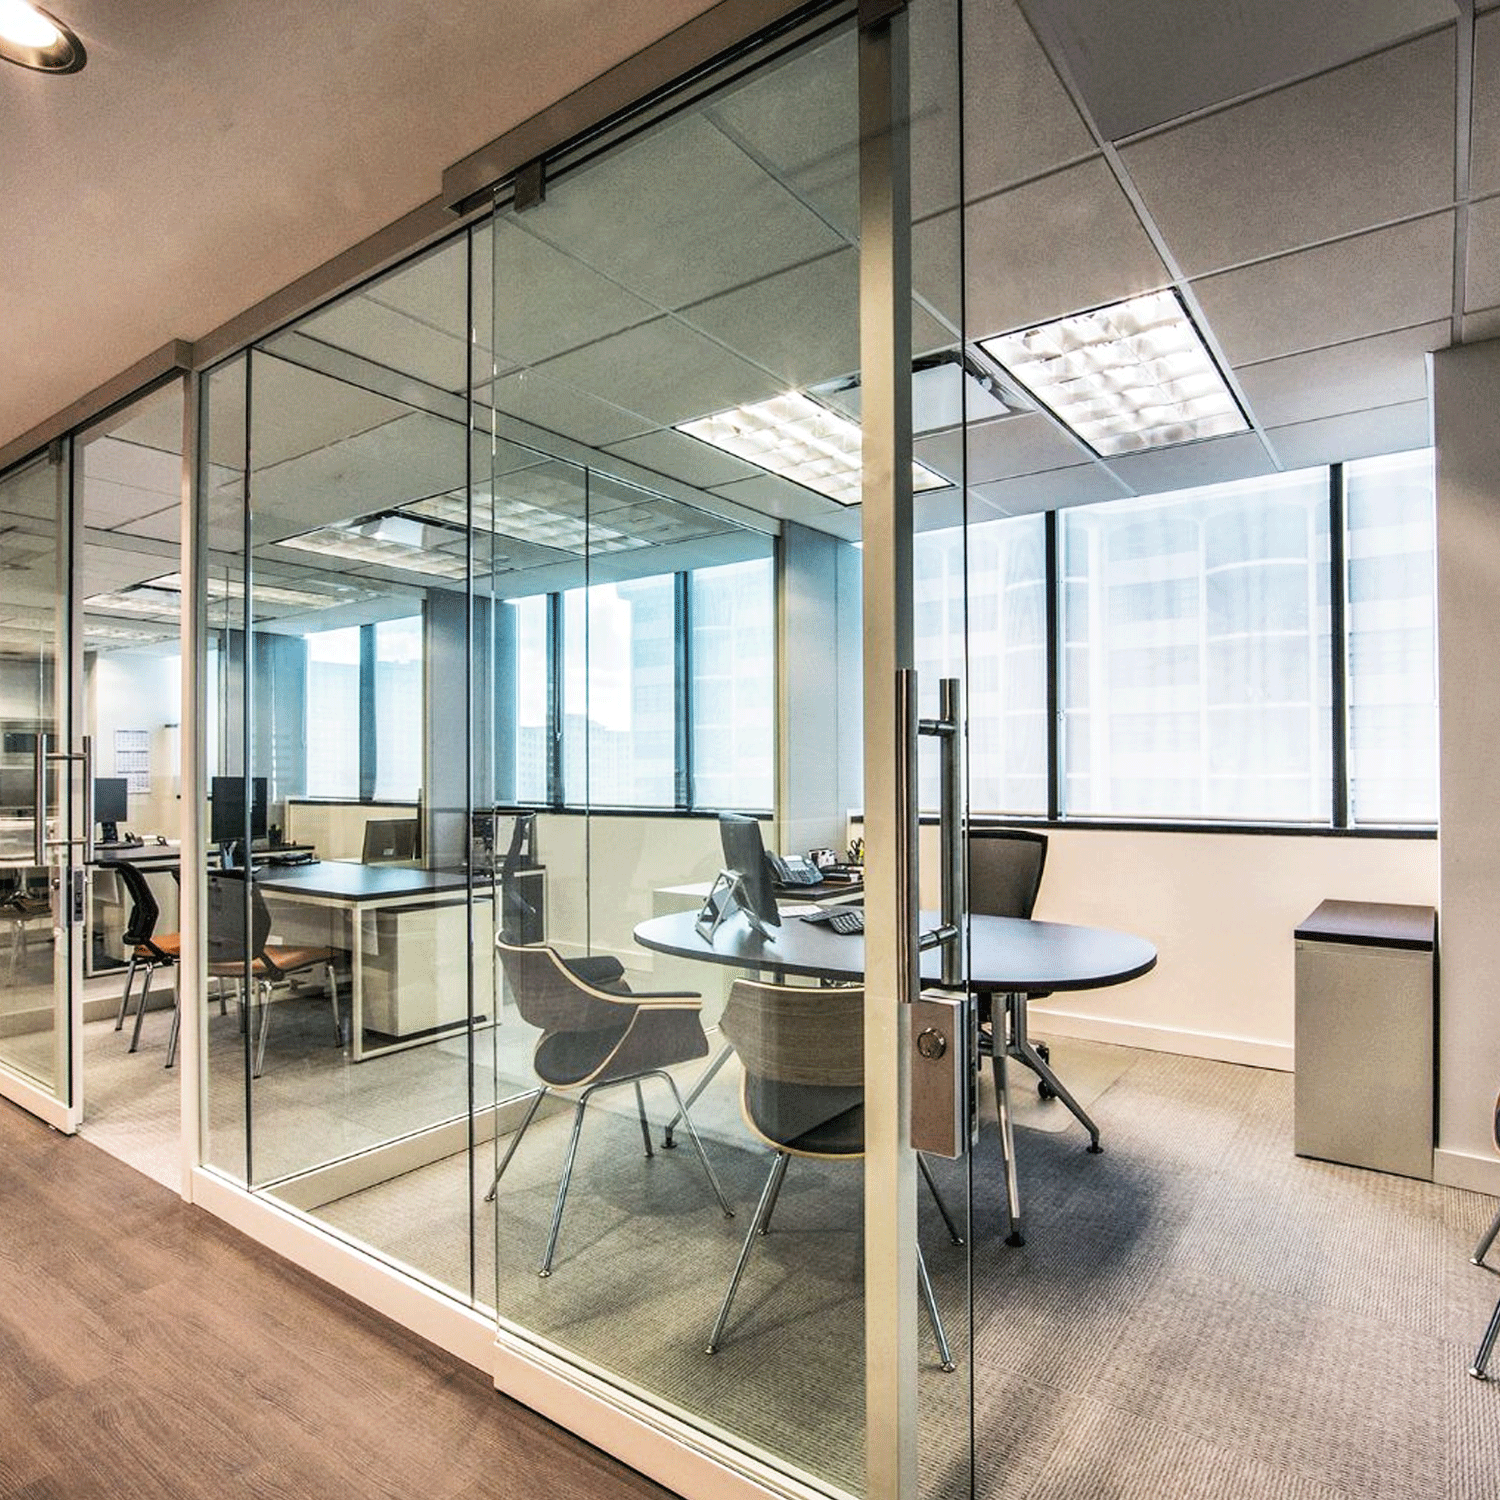 Lightline   Lightline  is a pre-assembled, unitized glass wall system dedicated to the enhancement of light. Its seamless connections maximize natural light for brighter, more efficient spaces while providing visual unification between architecture and furniture.